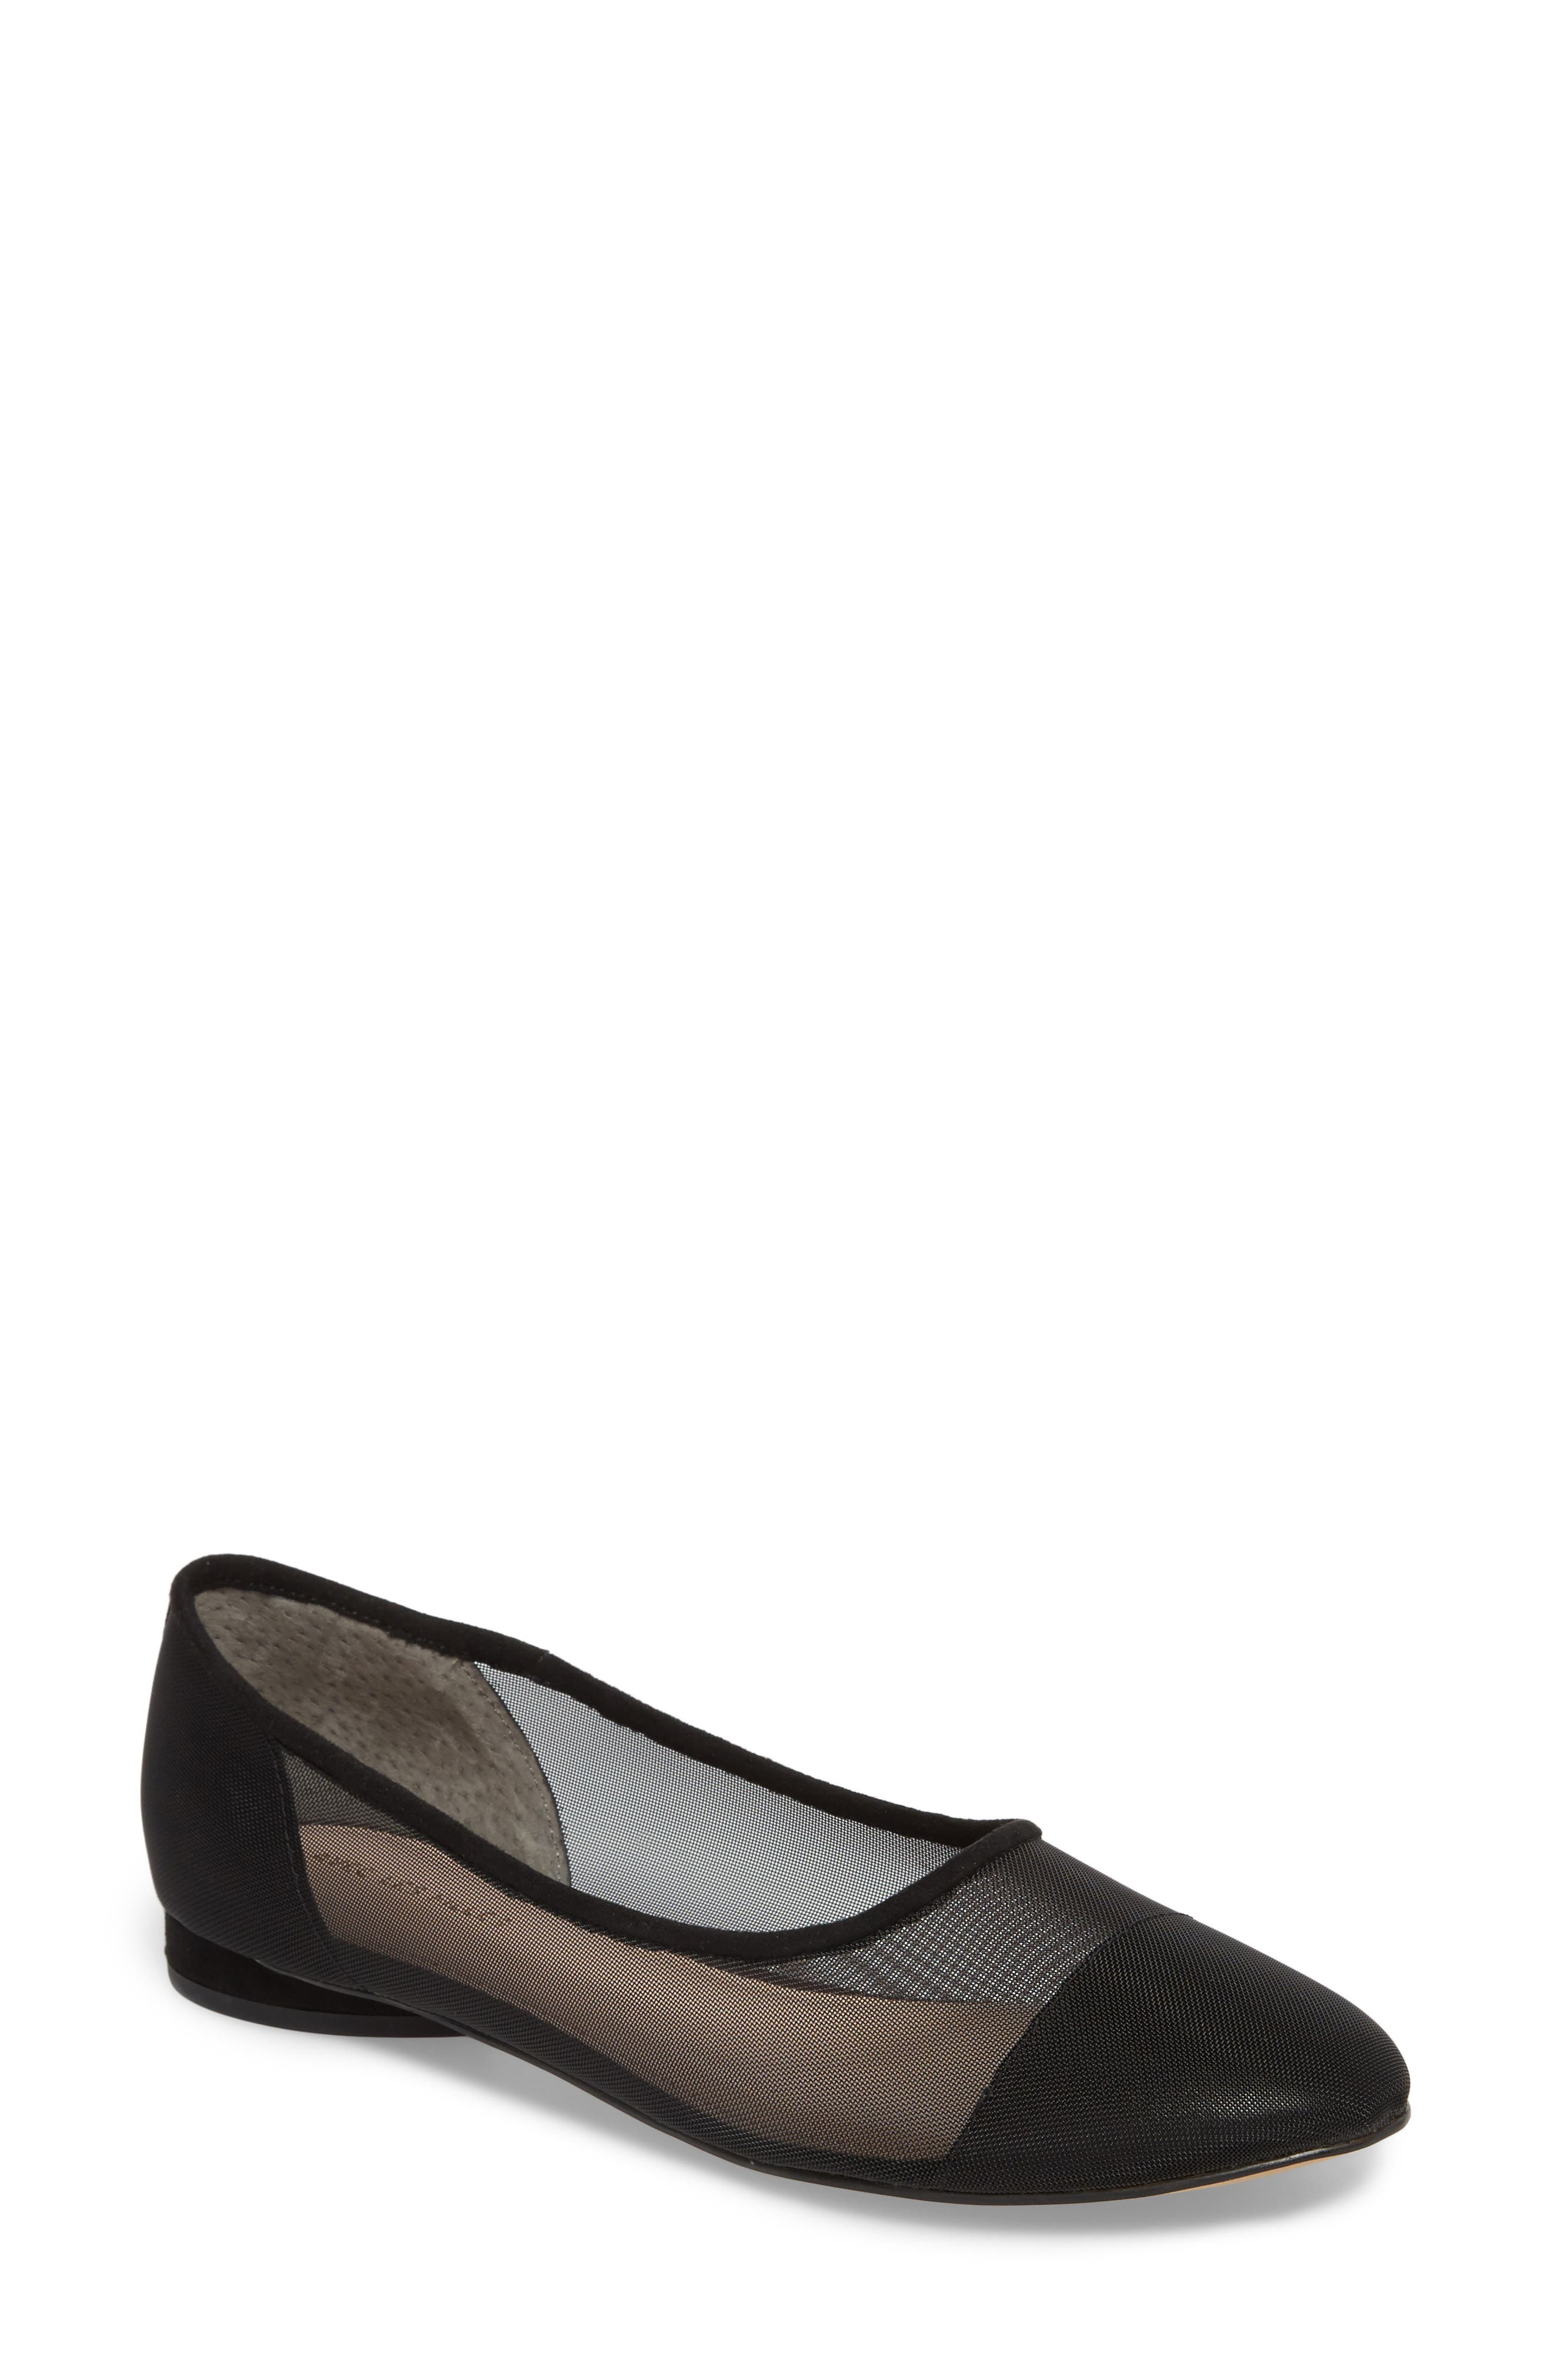 Marian Mesh Inset Flat,                         Main,                         color, Black Suede